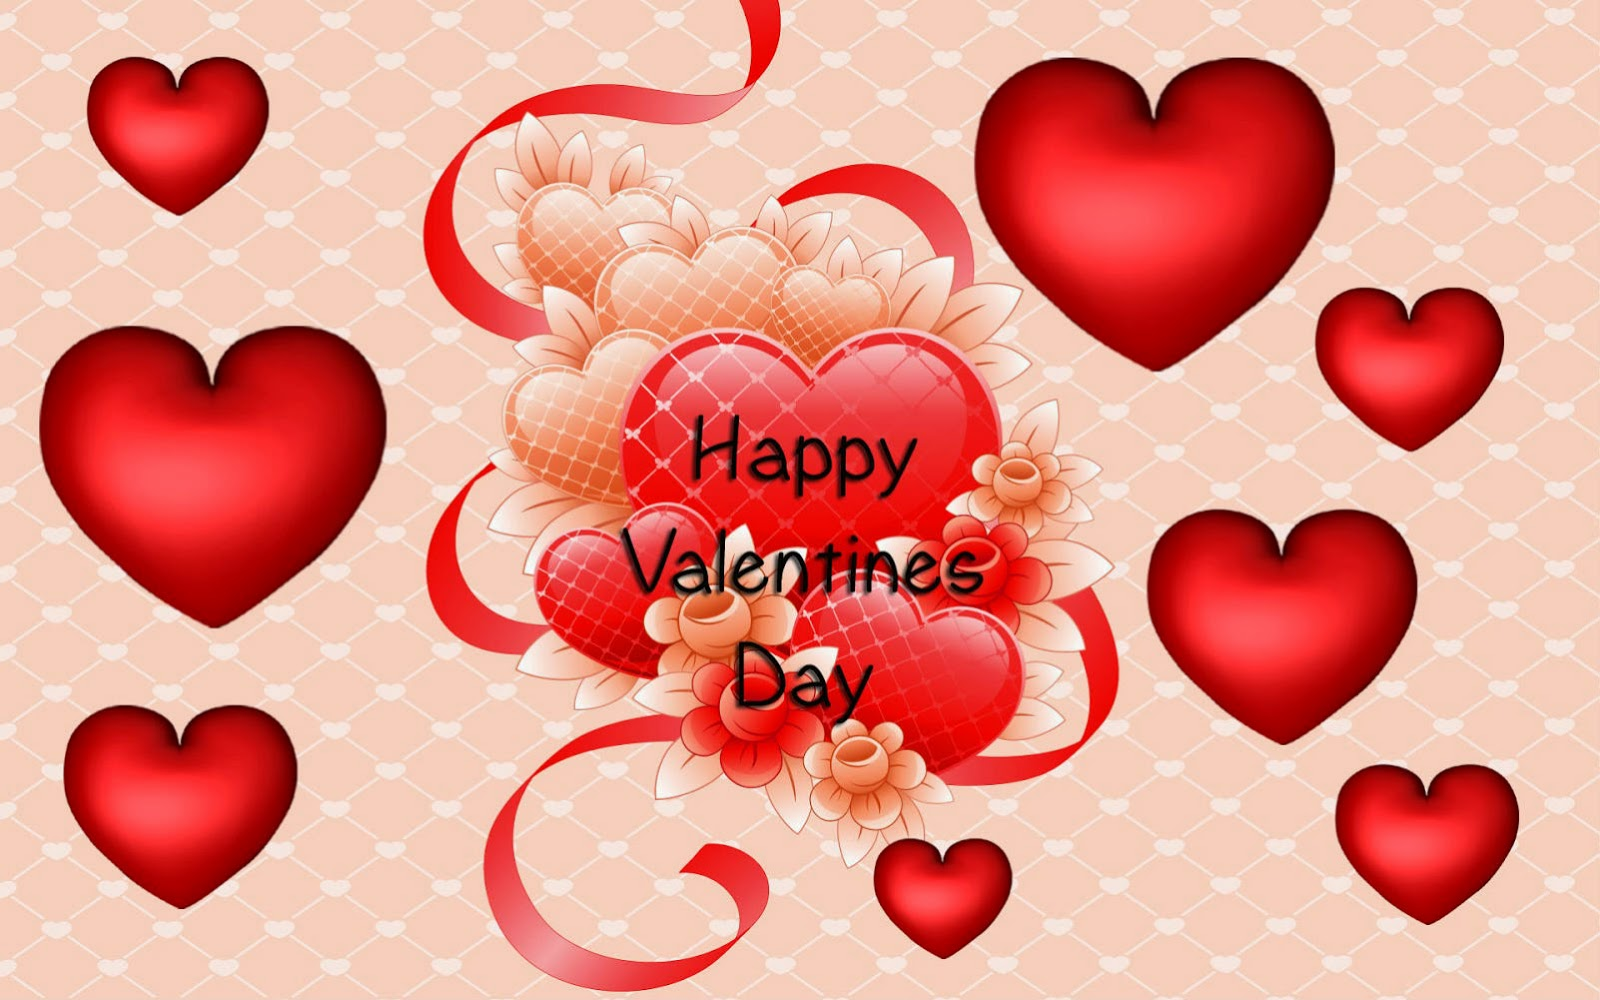 New Facebook Happy Valentines Day greeting cards – Happy Valentines Day Greeting Card